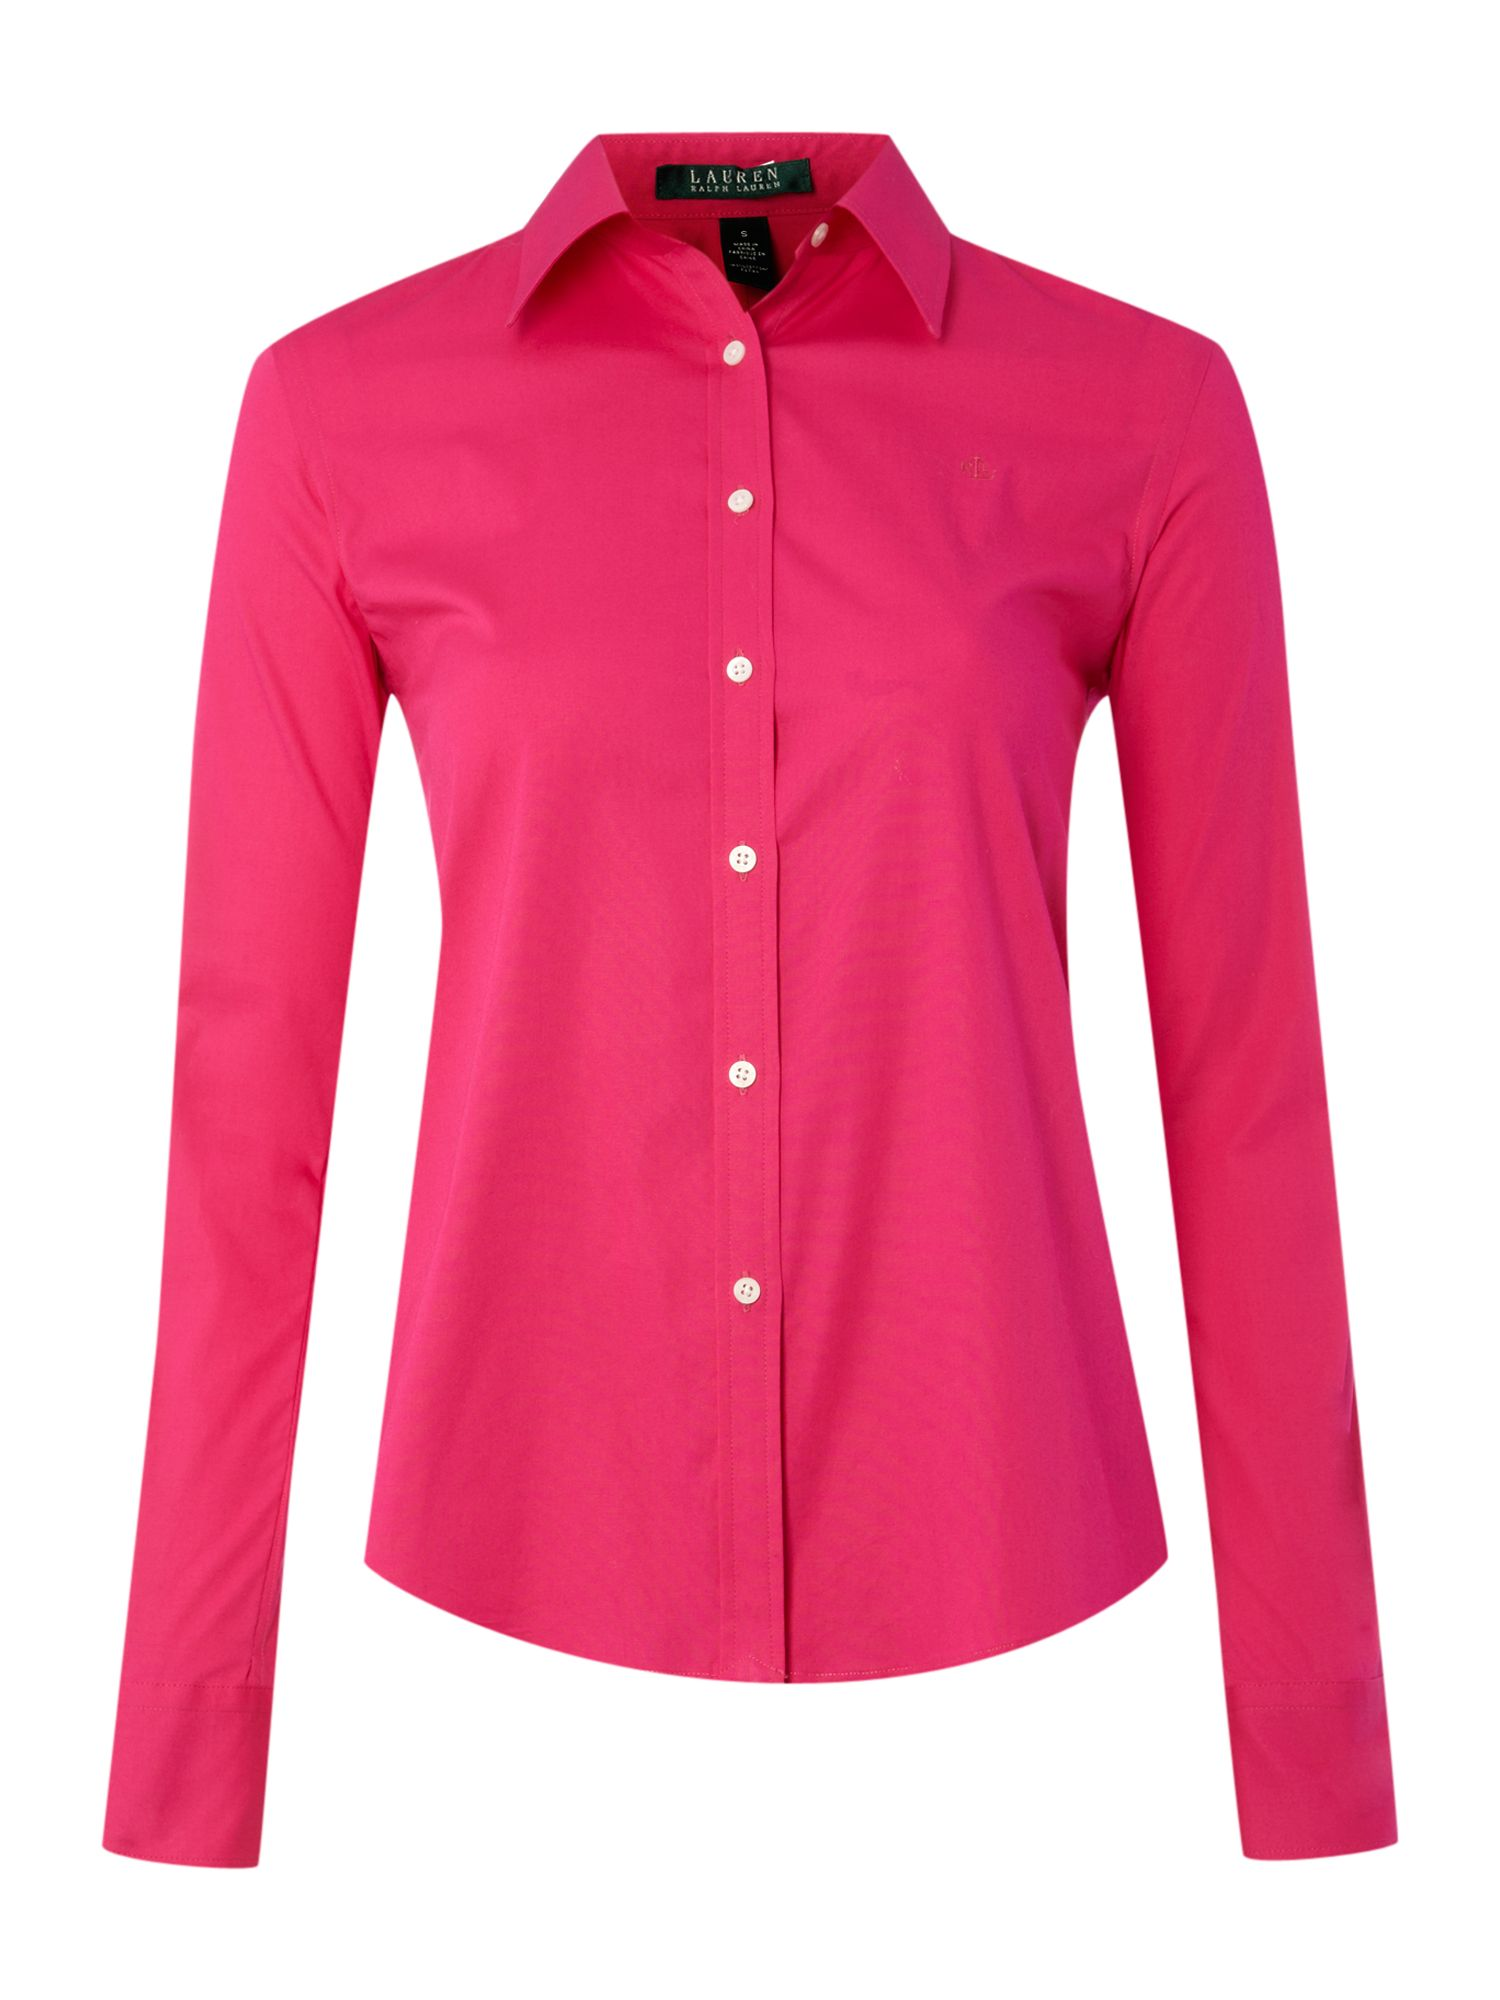 lauren by ralph lauren long sleeved blouse with logo in pink lyst. Black Bedroom Furniture Sets. Home Design Ideas